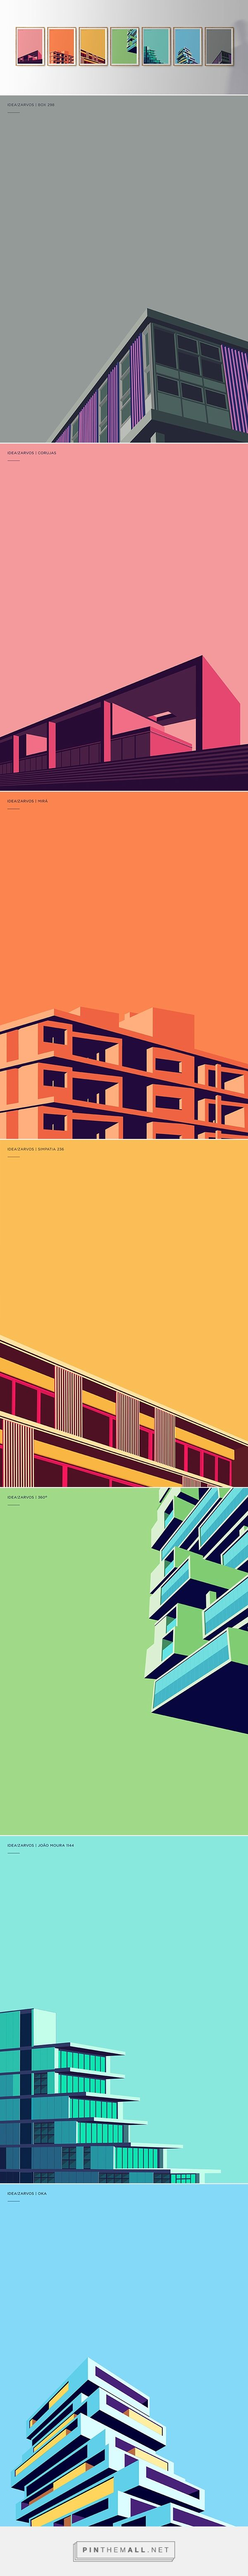 very cool series of minimal architecture posters the use of color is smart not - Poster Design Ideas